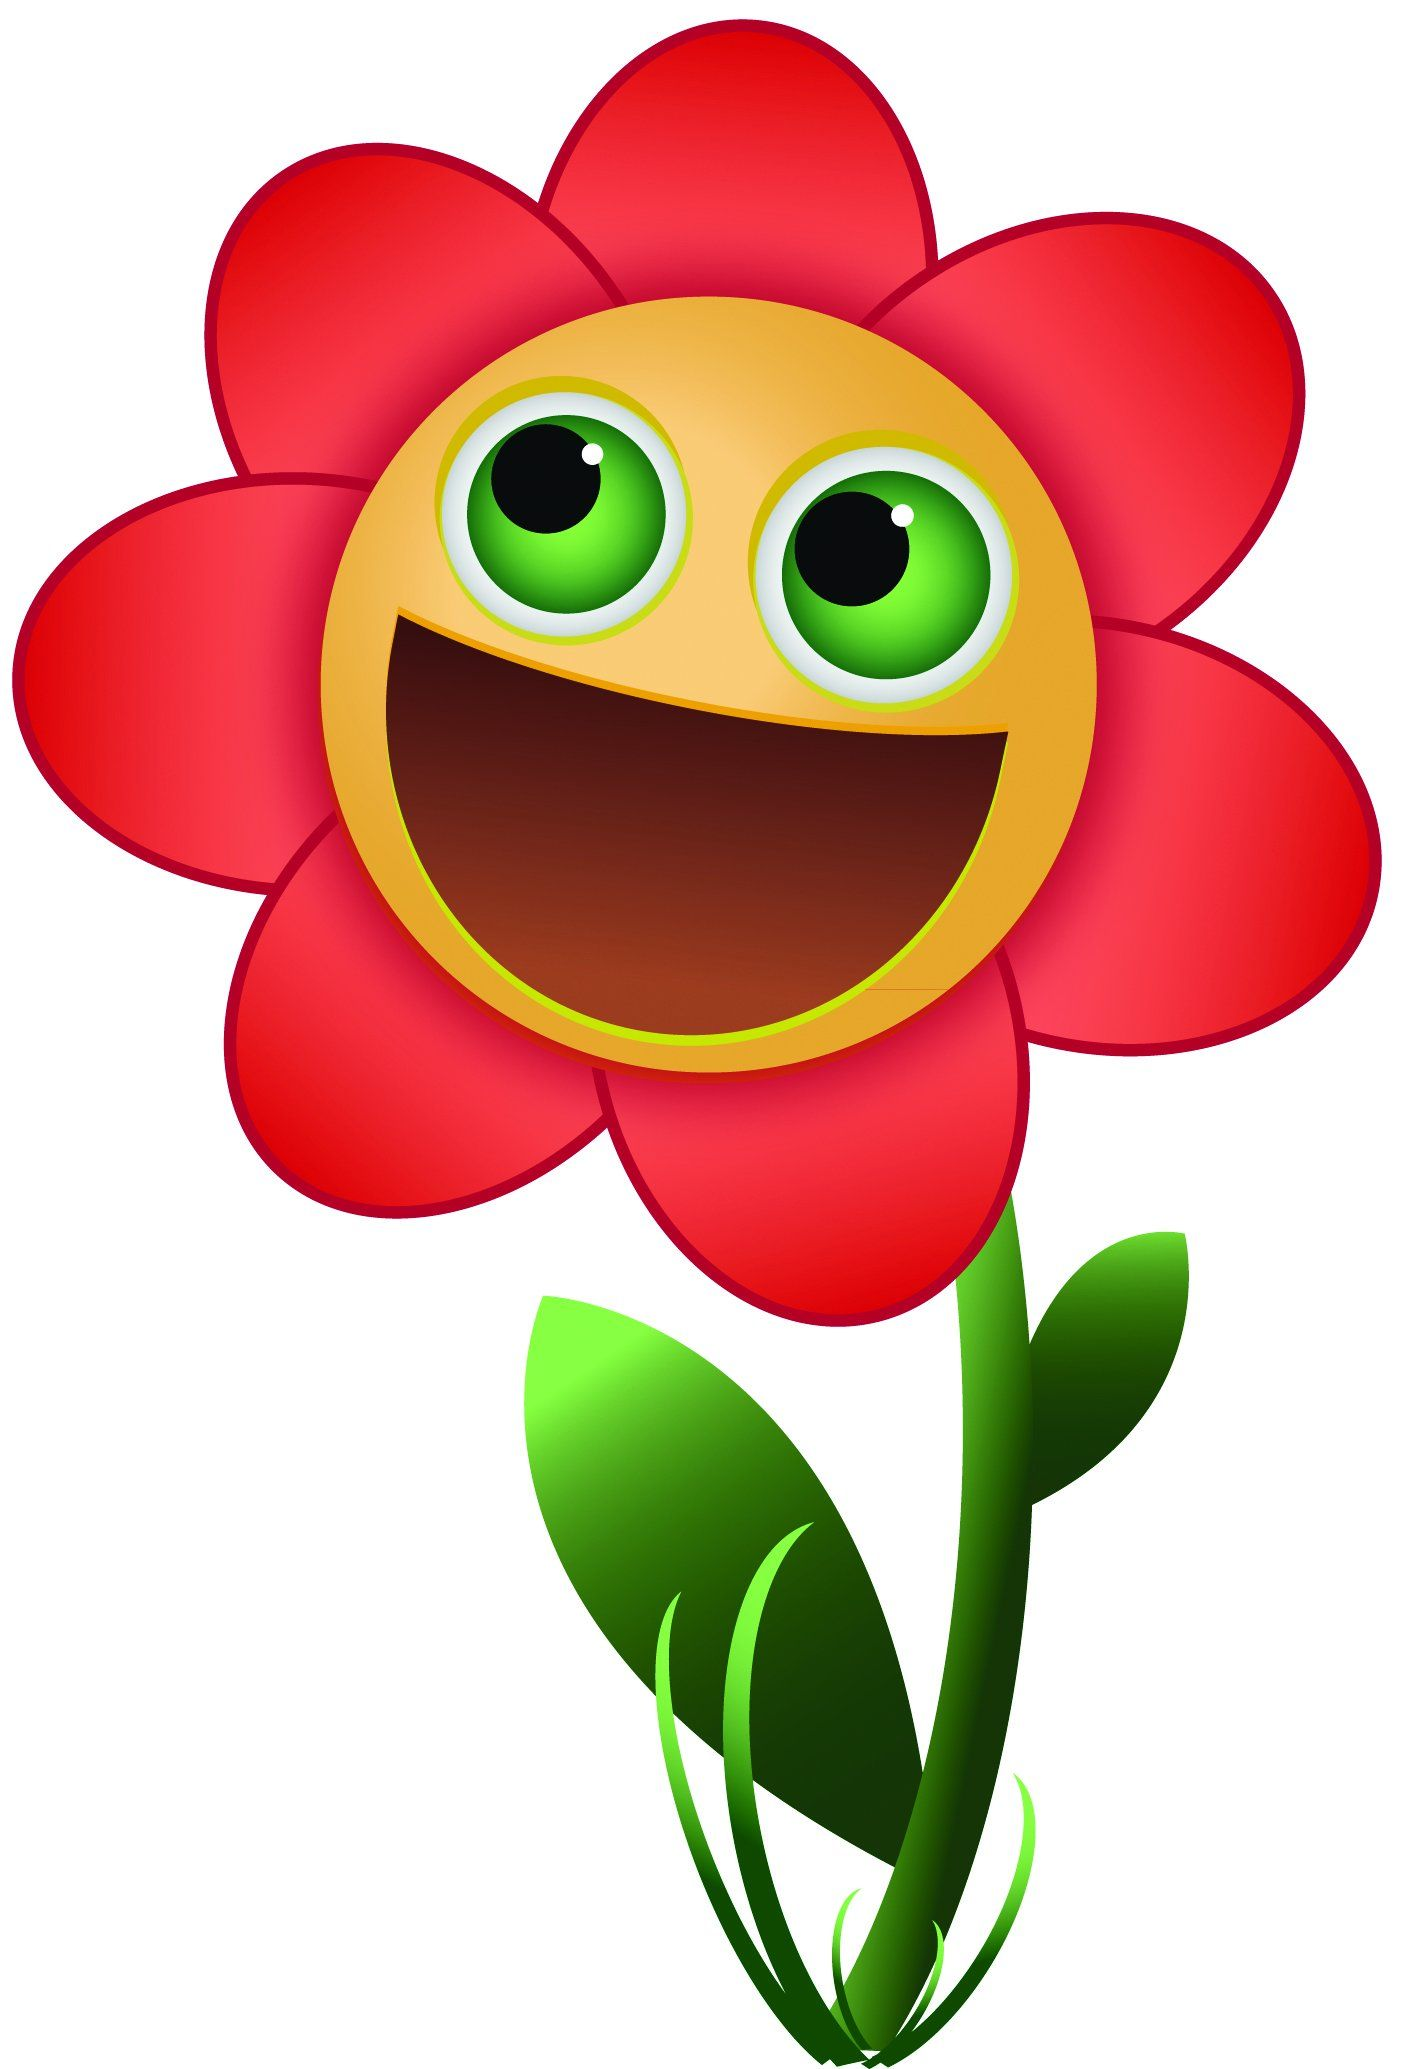 how to make flower emoji on facebook